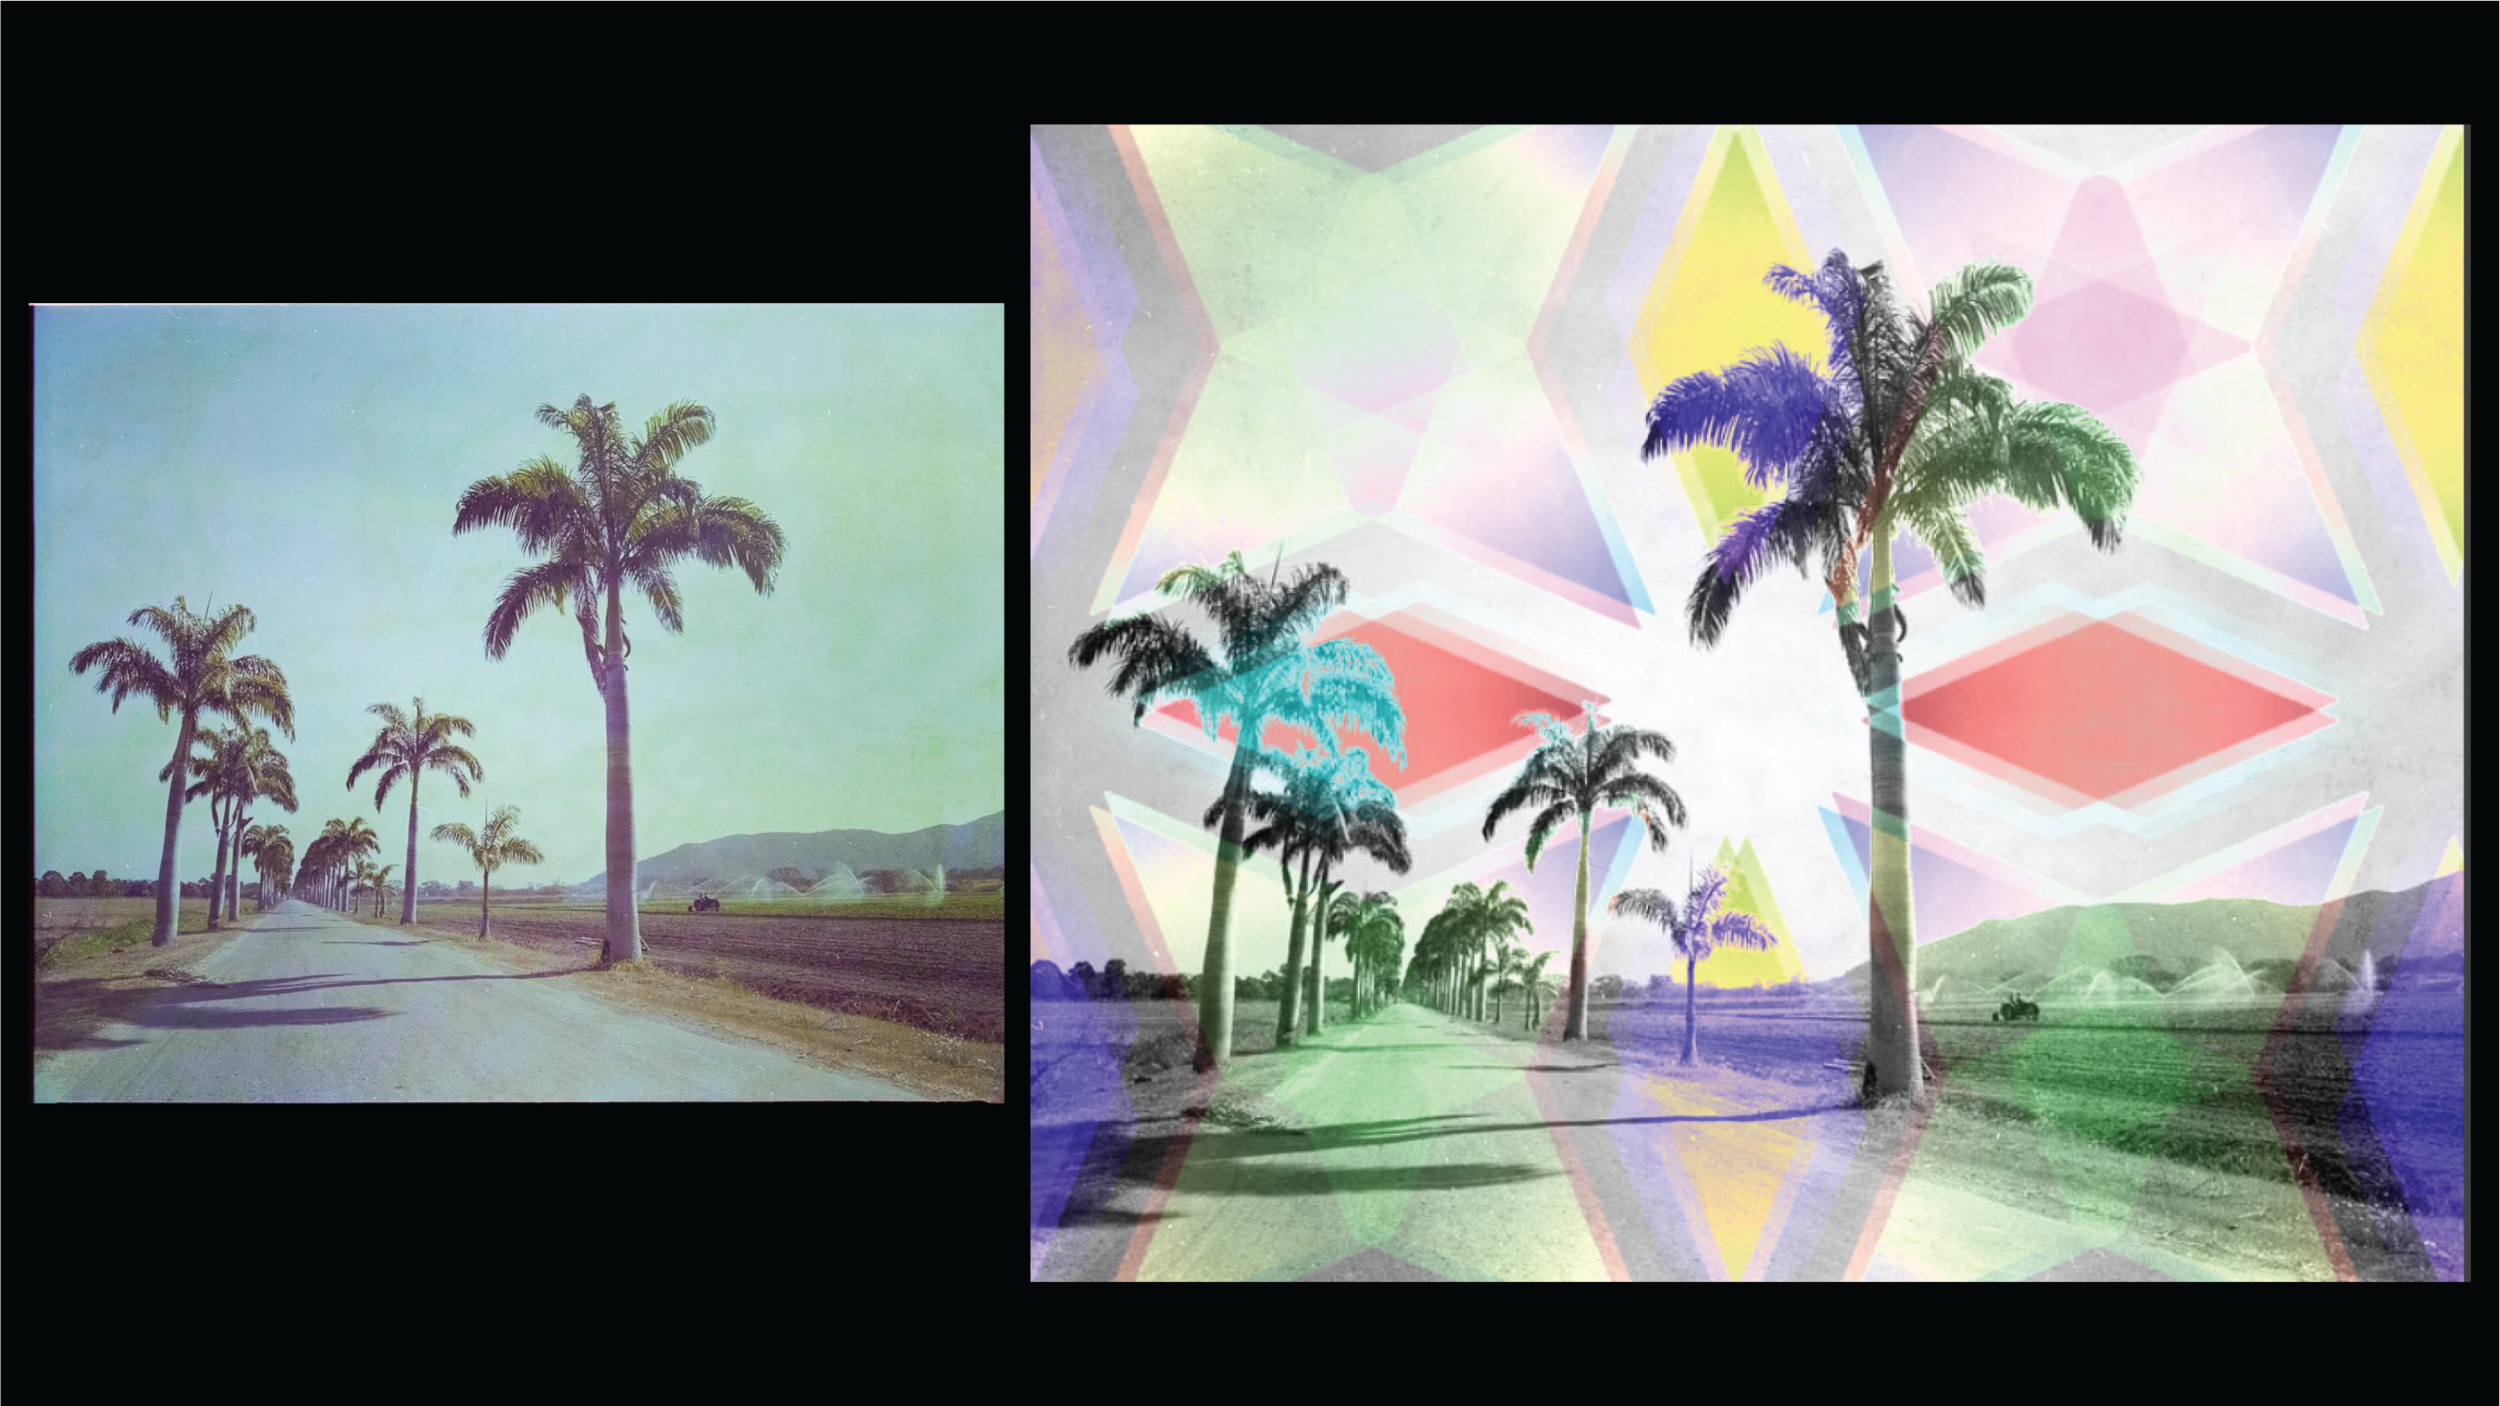 ~   However in digitizing my grandfather's negatives, I was reminded of Venezuela's rich culture and magical landscapes. Of collecting quartz crystals in the streets, and swimming in its crystalline waters. I began remixing his photographs…